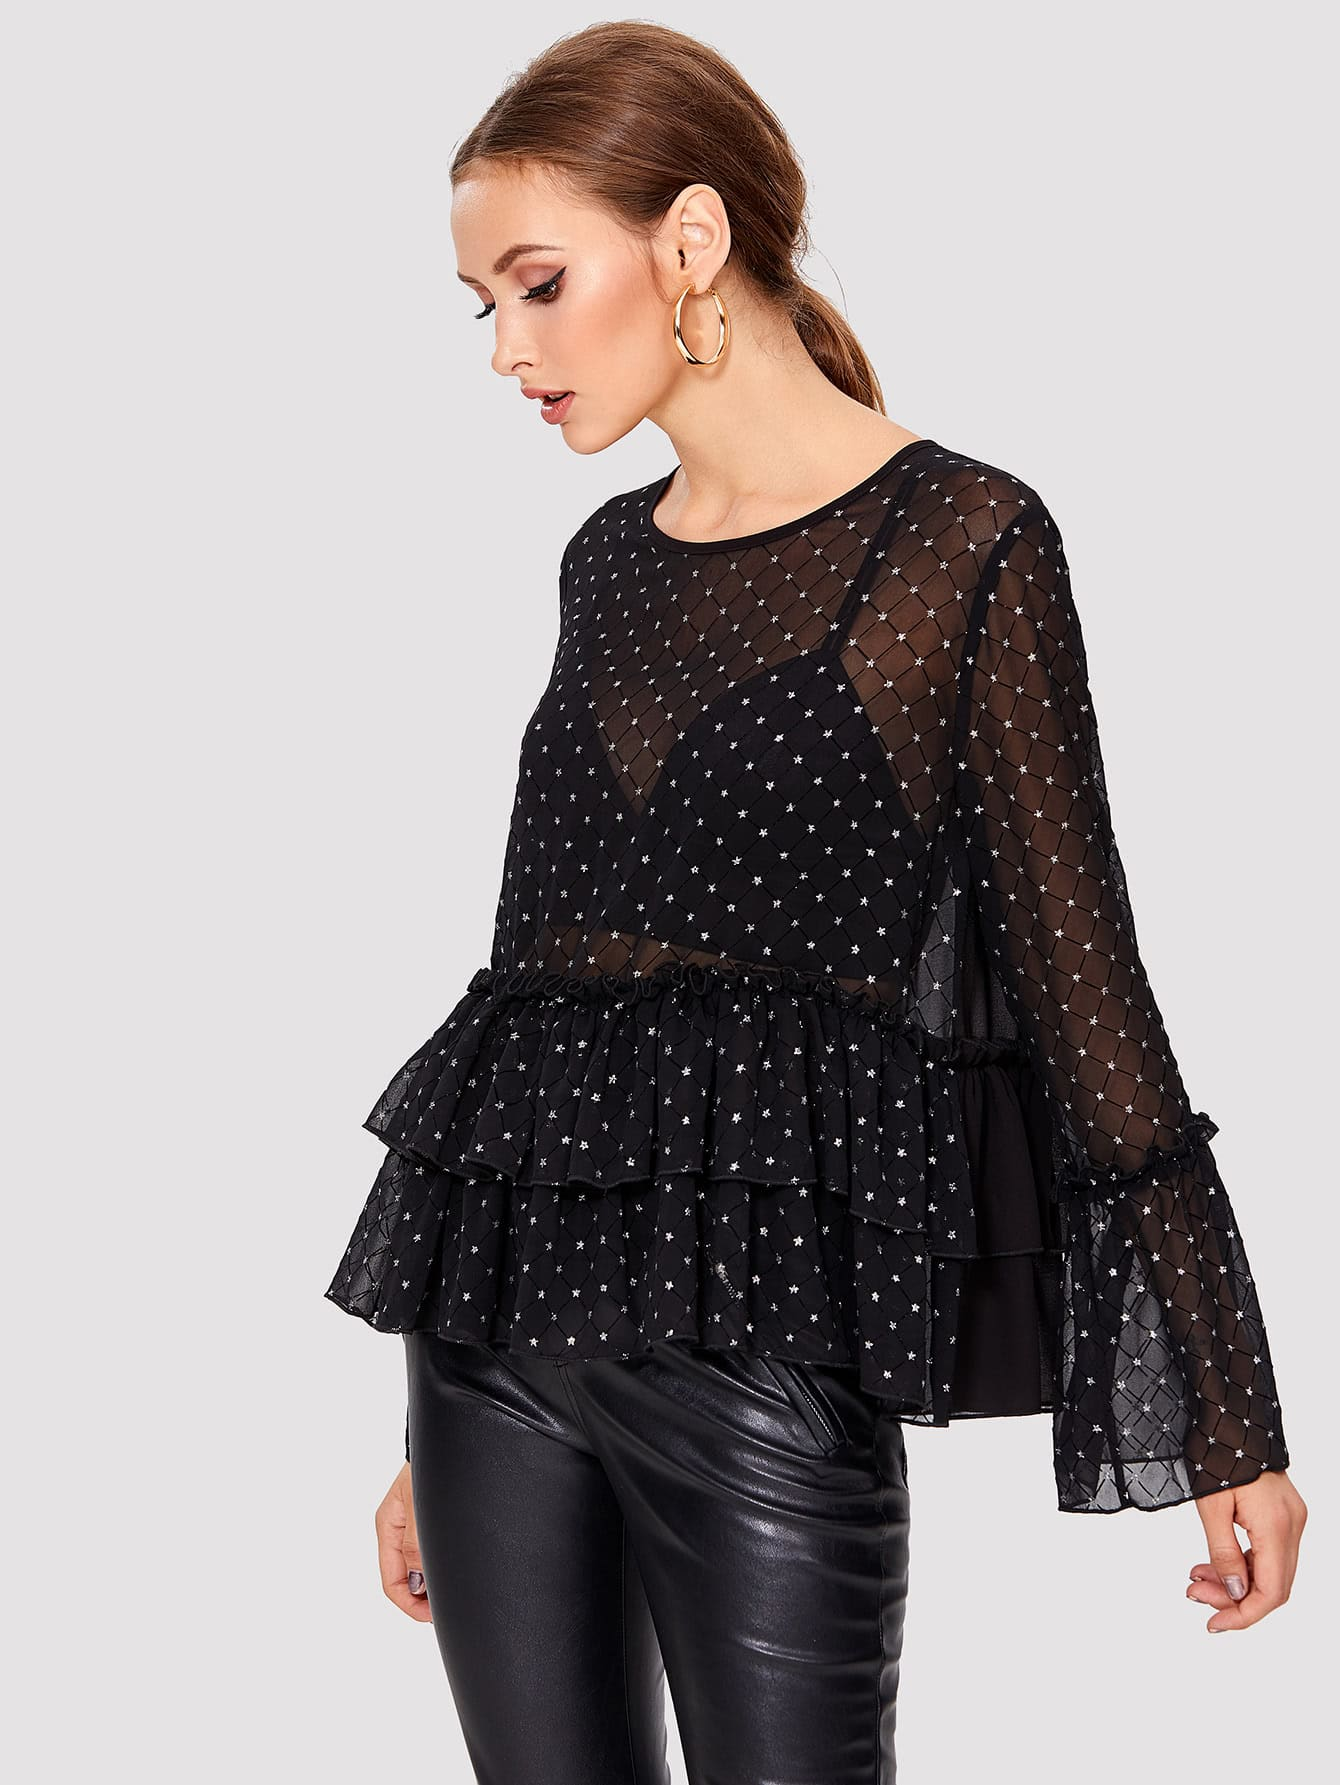 Star Print Frill Detail Tiered Top frill detail crochet insert embroidered mesh top